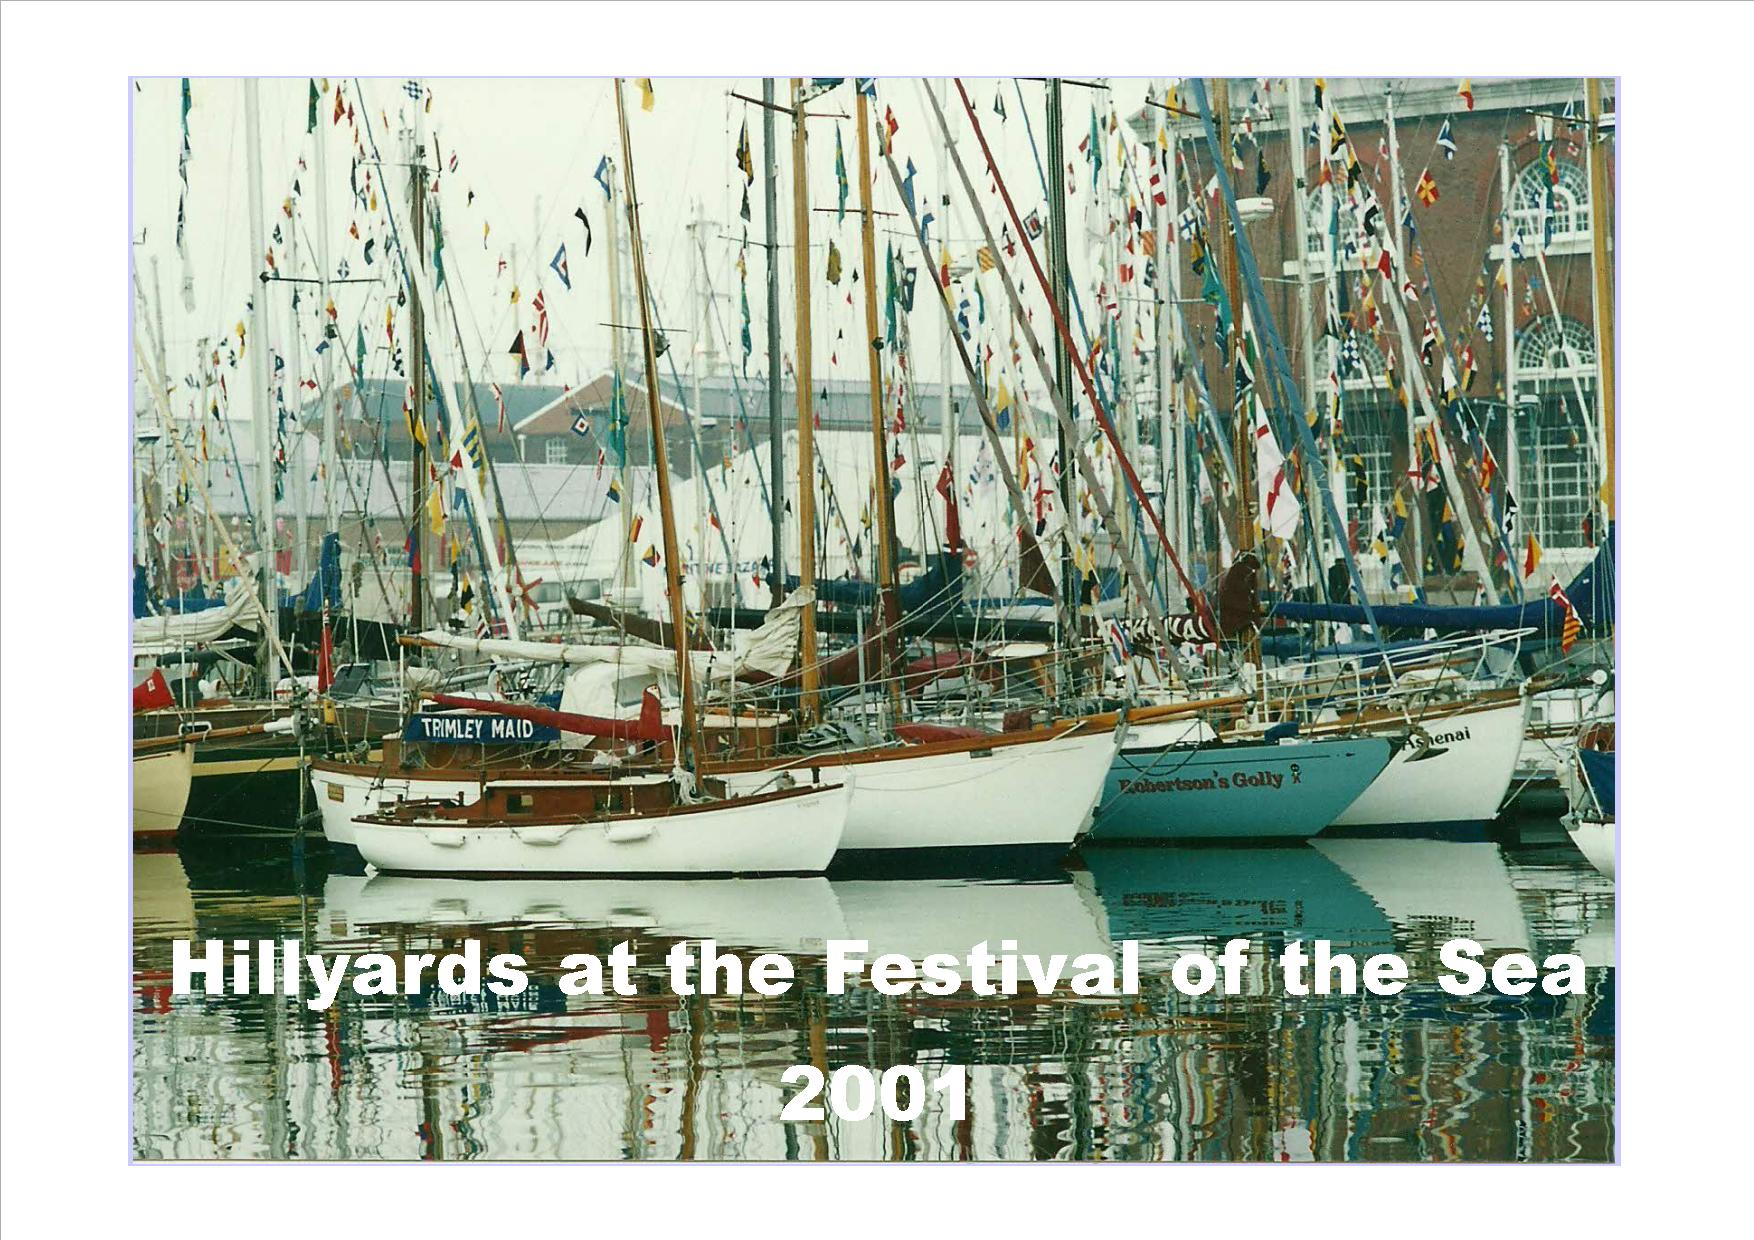 Festival of                   the Sea 2001